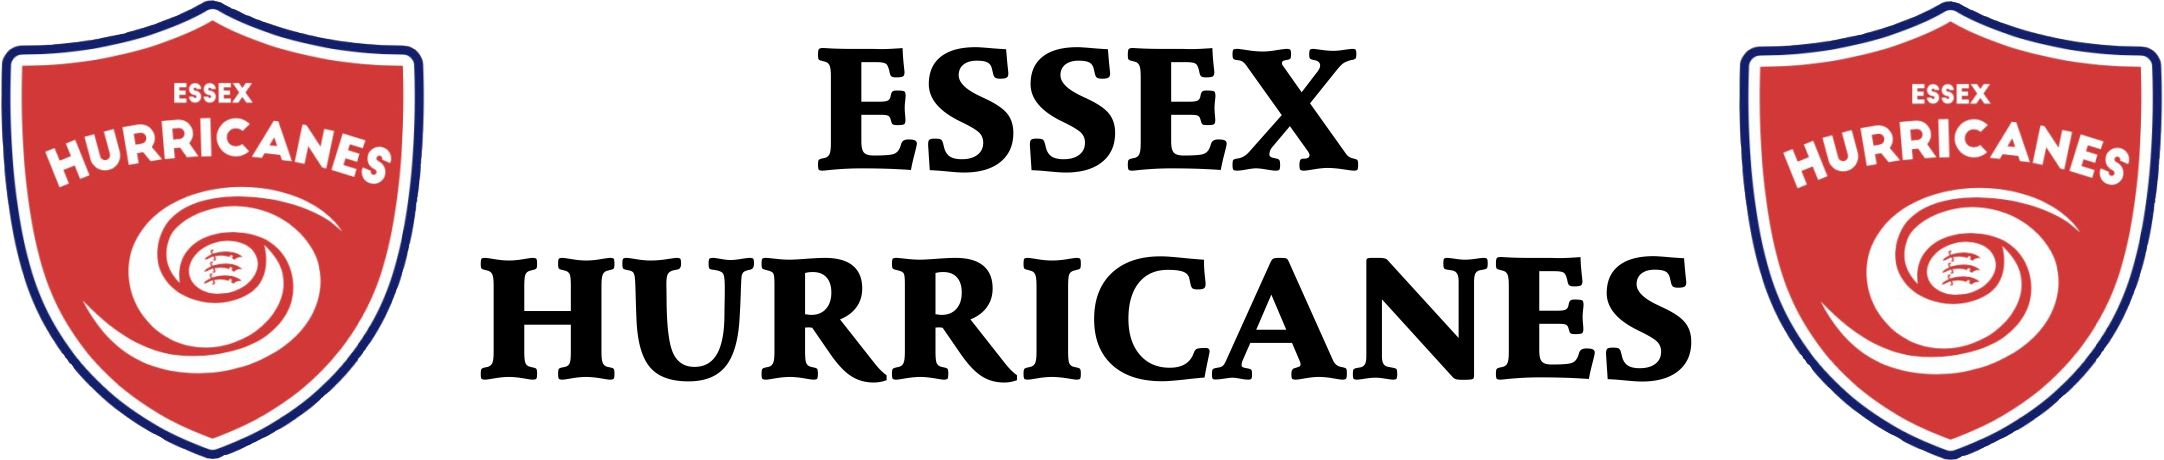 Essex Hurricanes Handball